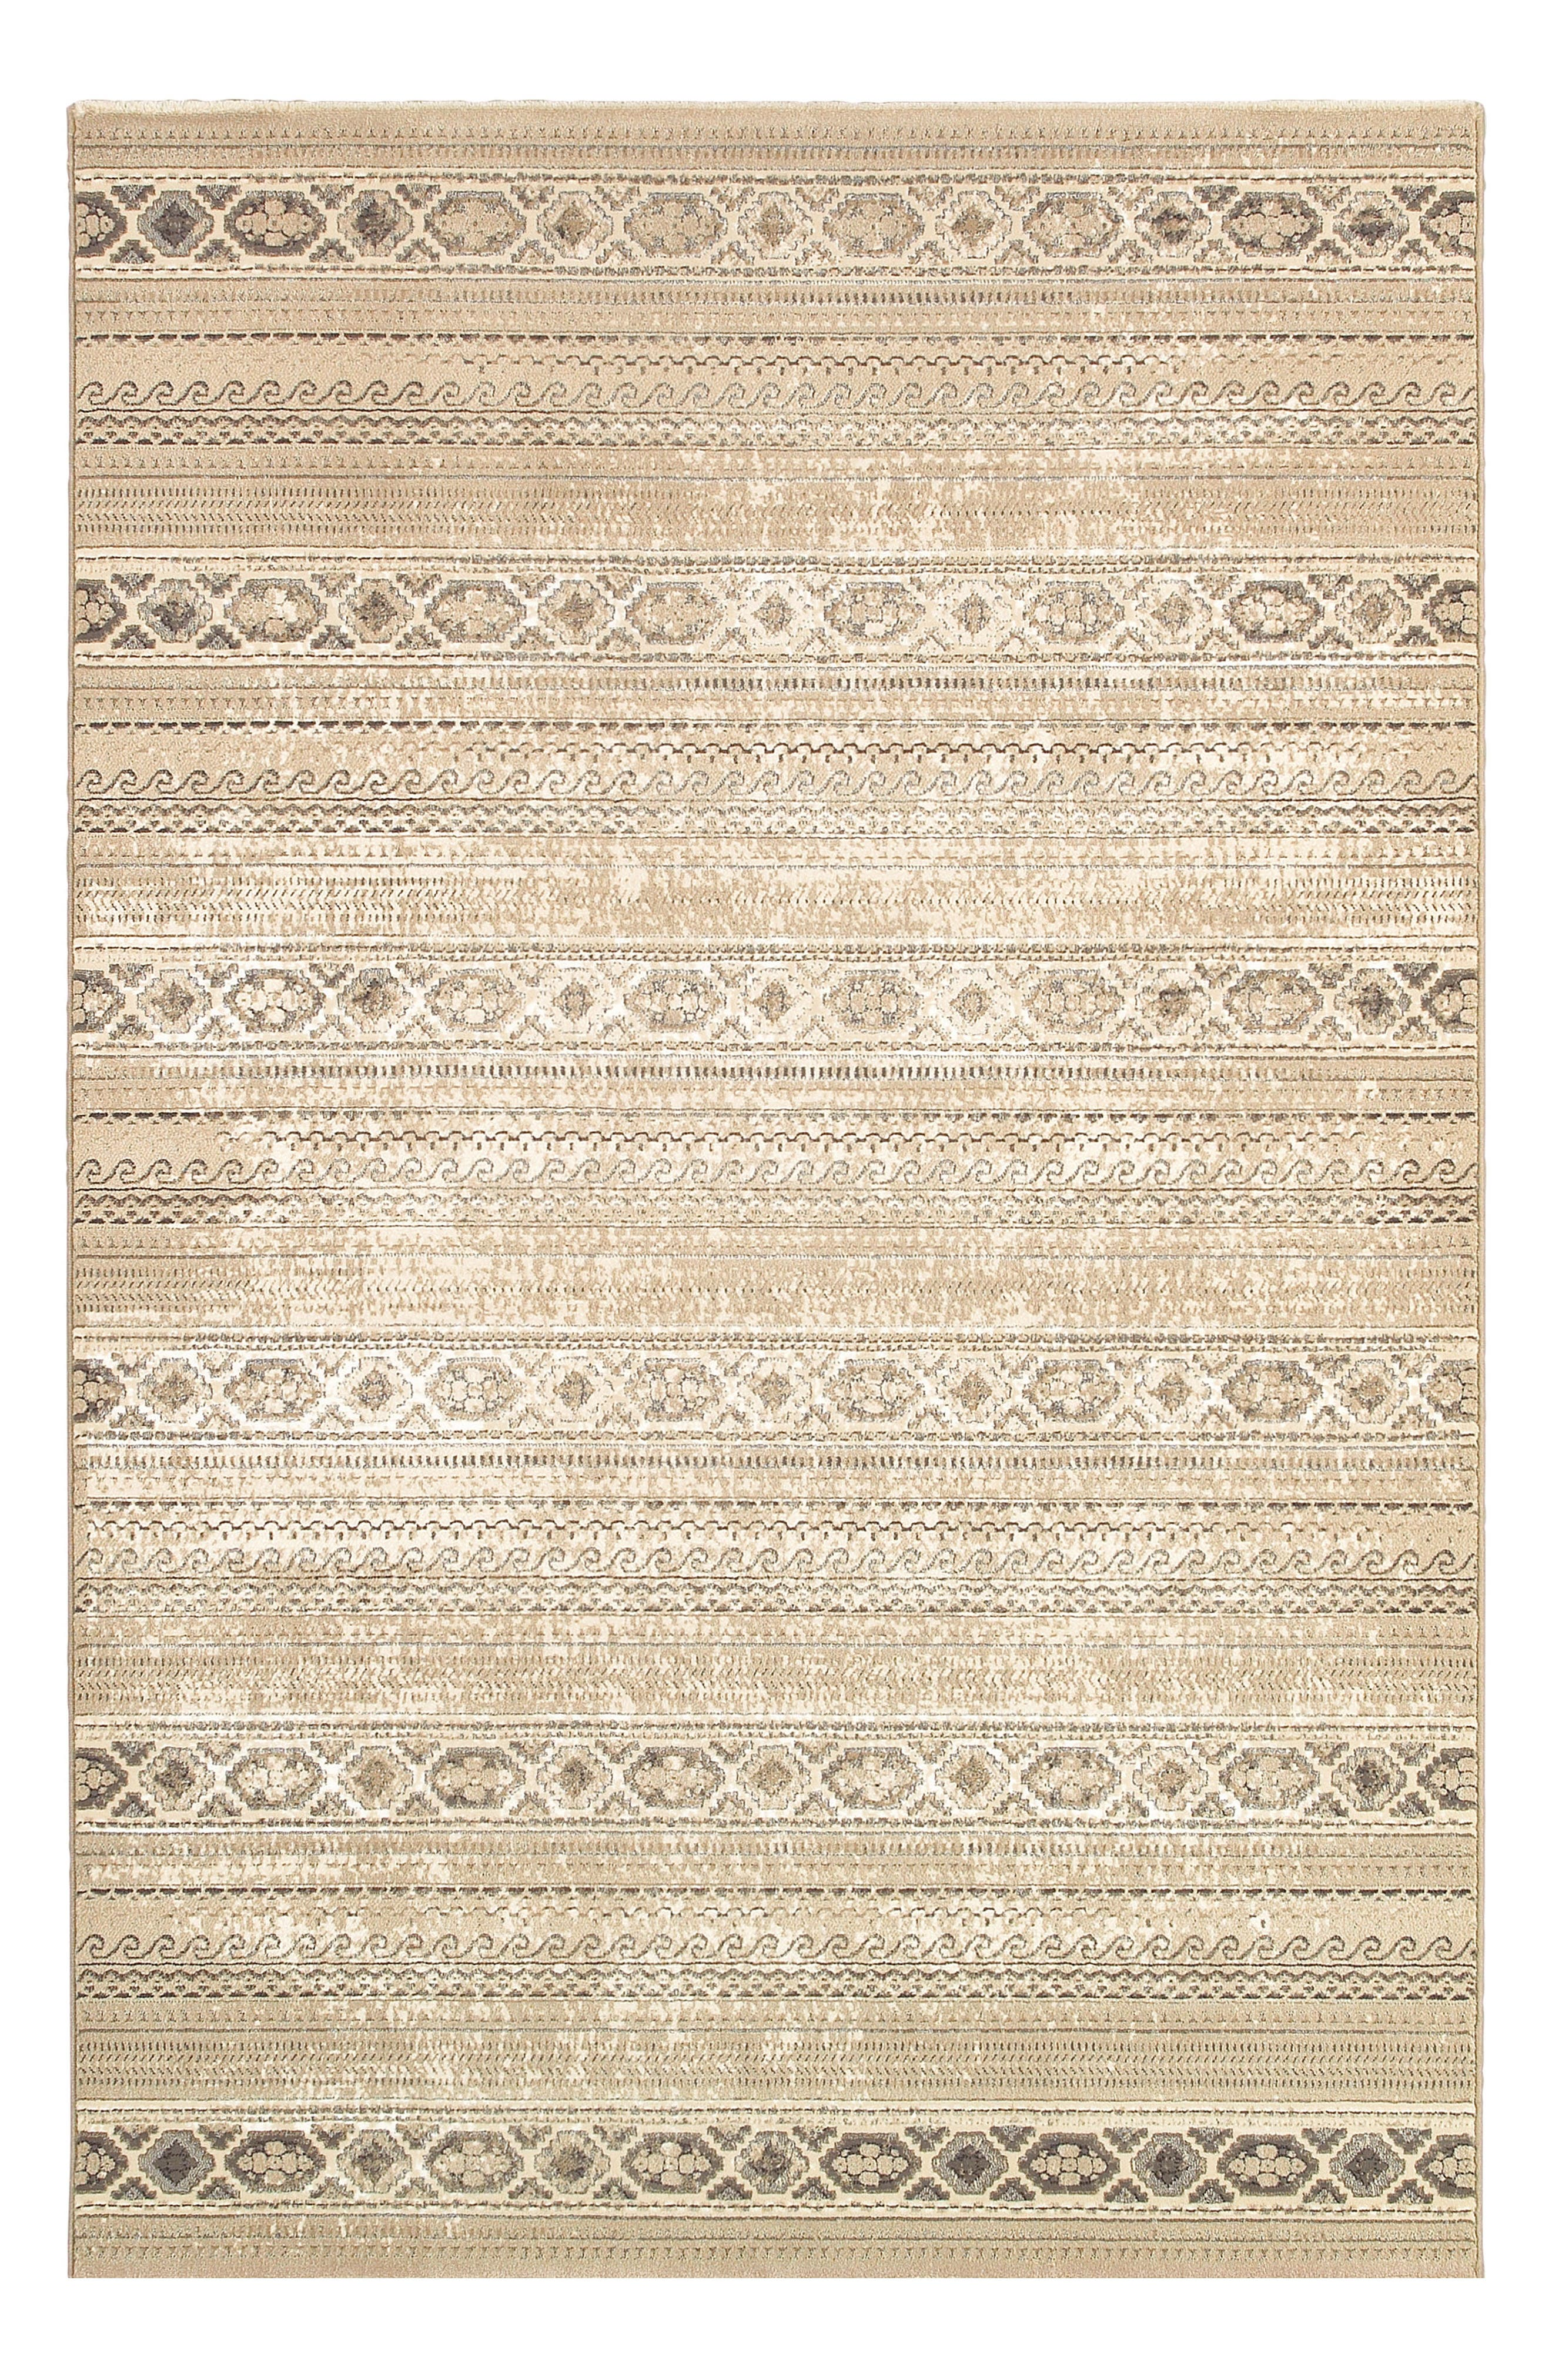 Malta Indoor/Outdoor Rug,                             Main thumbnail 1, color,                             CHAMPAGNE